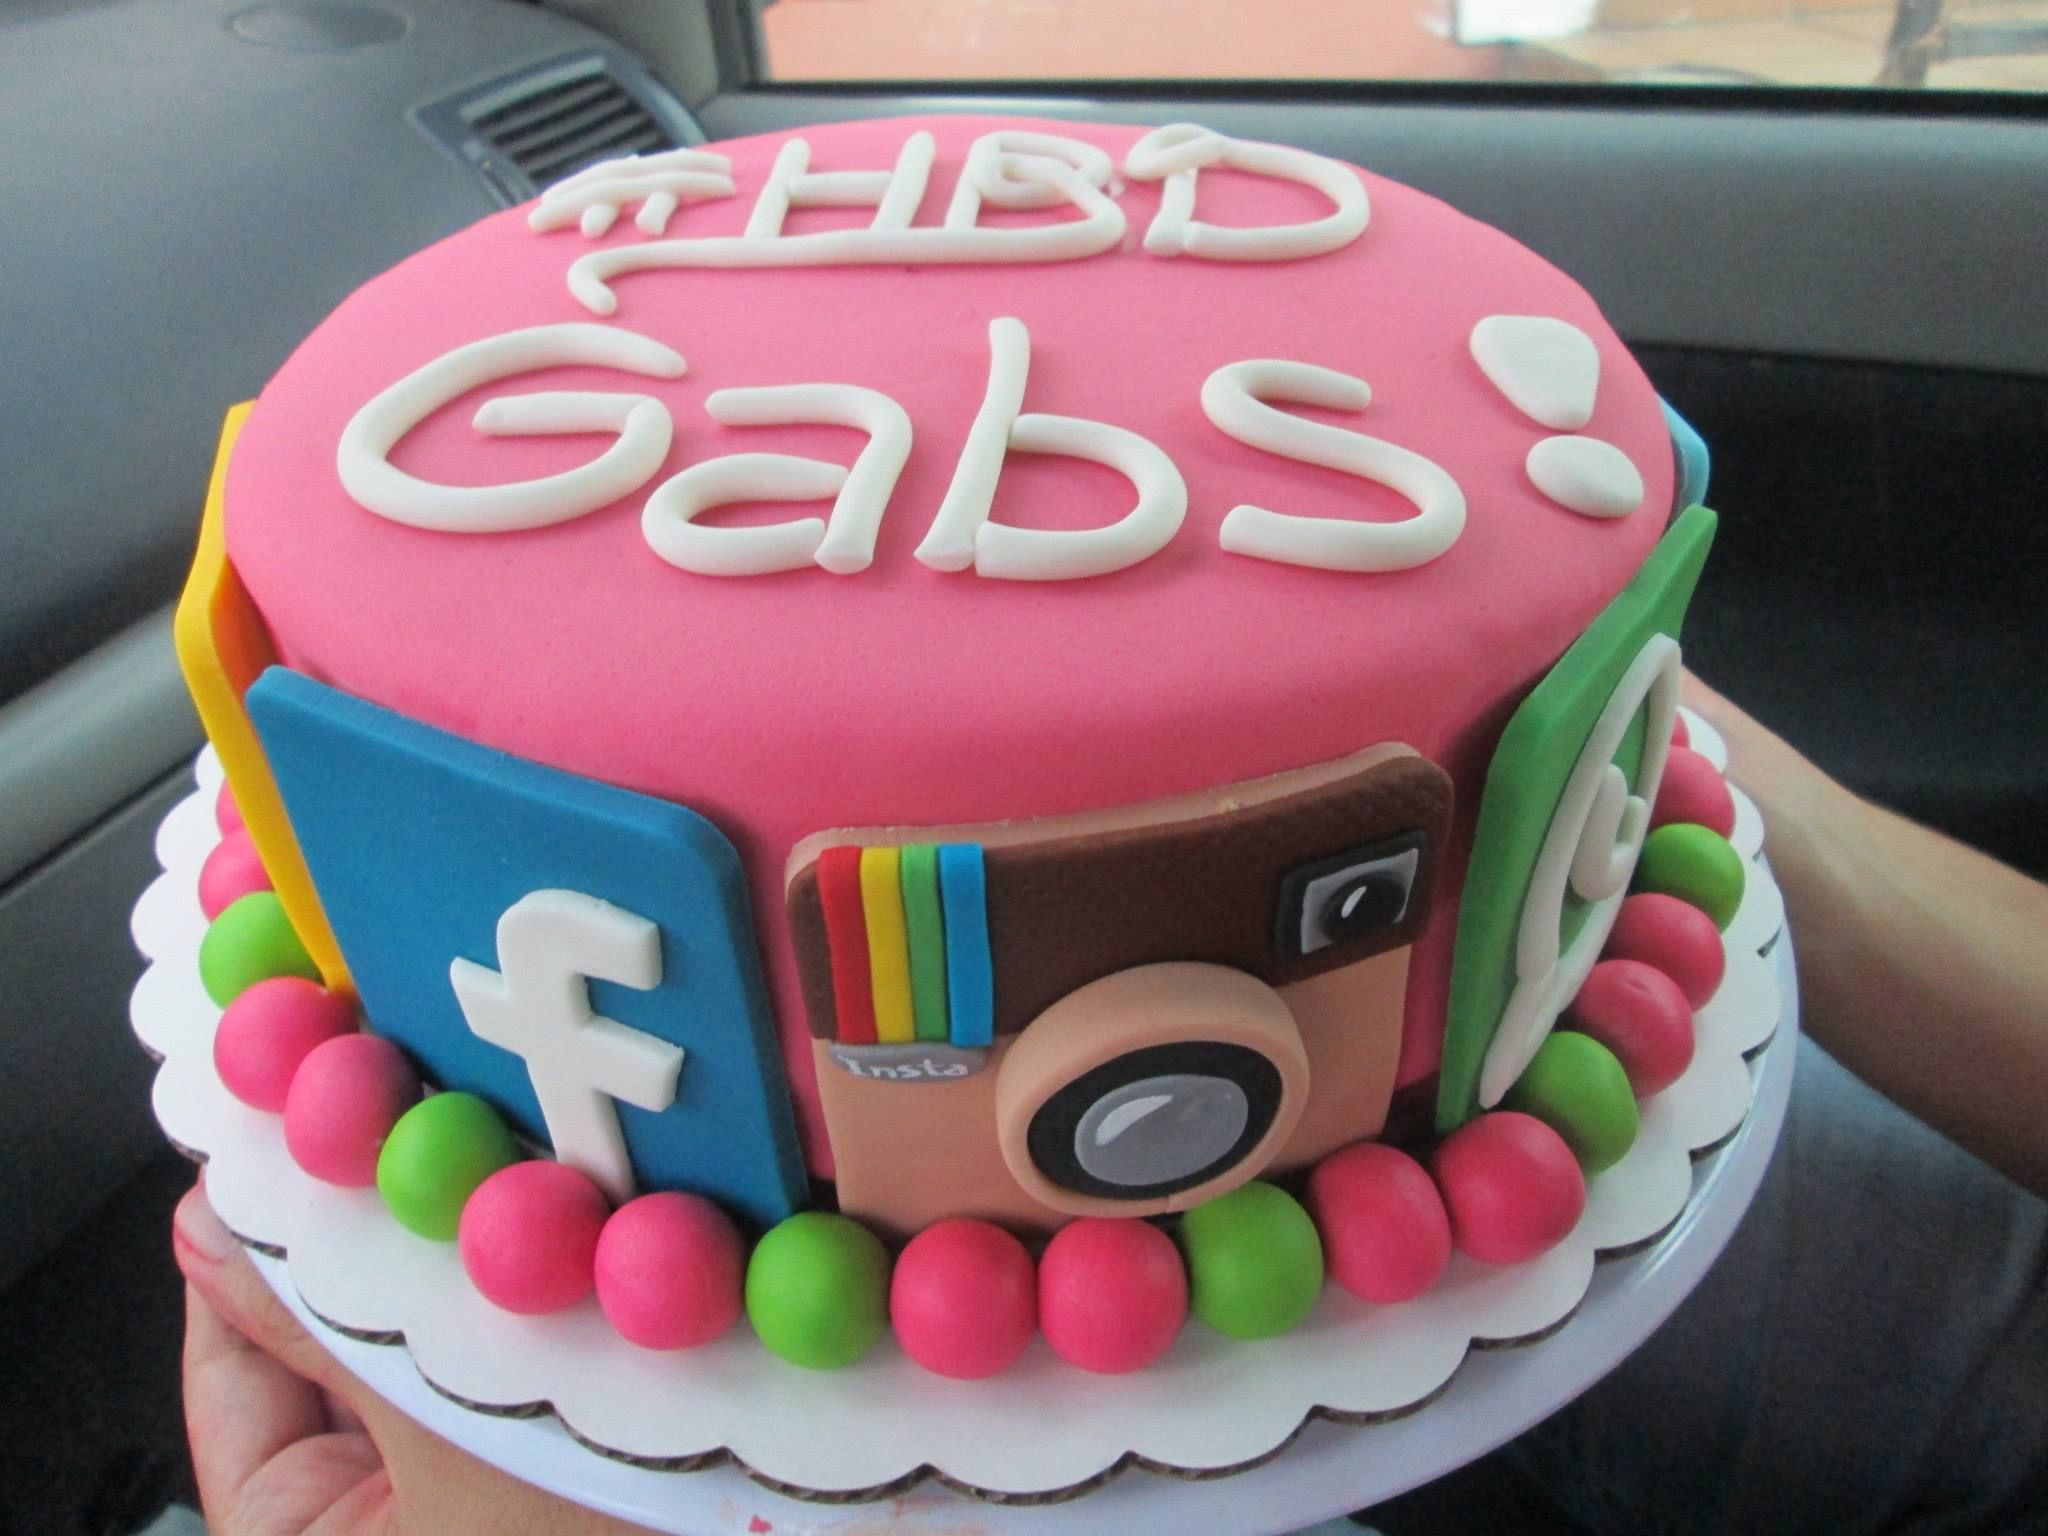 Social Media Cake Boy 16th Birthday Cakes13th